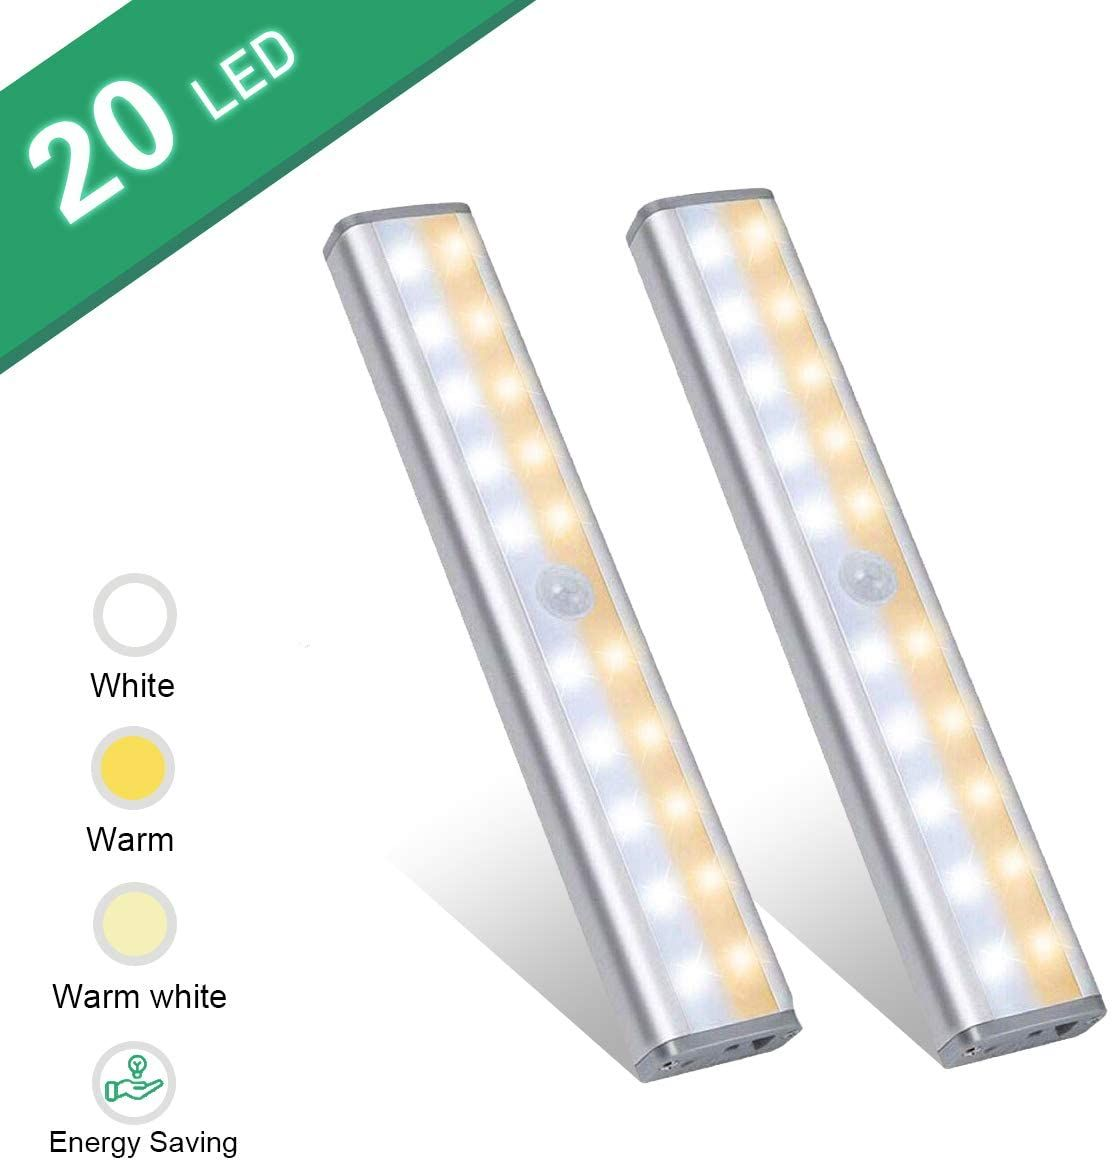 Under Cabinet Lighting Vikano 20 Led Motion Sensor Closet Light Rechargeable 3 Color Mode Wireless Battery Operated Lights Bar For Kitchen Stair Hallway Under C In 2020 Motion Sensor Closet Light Under Counter